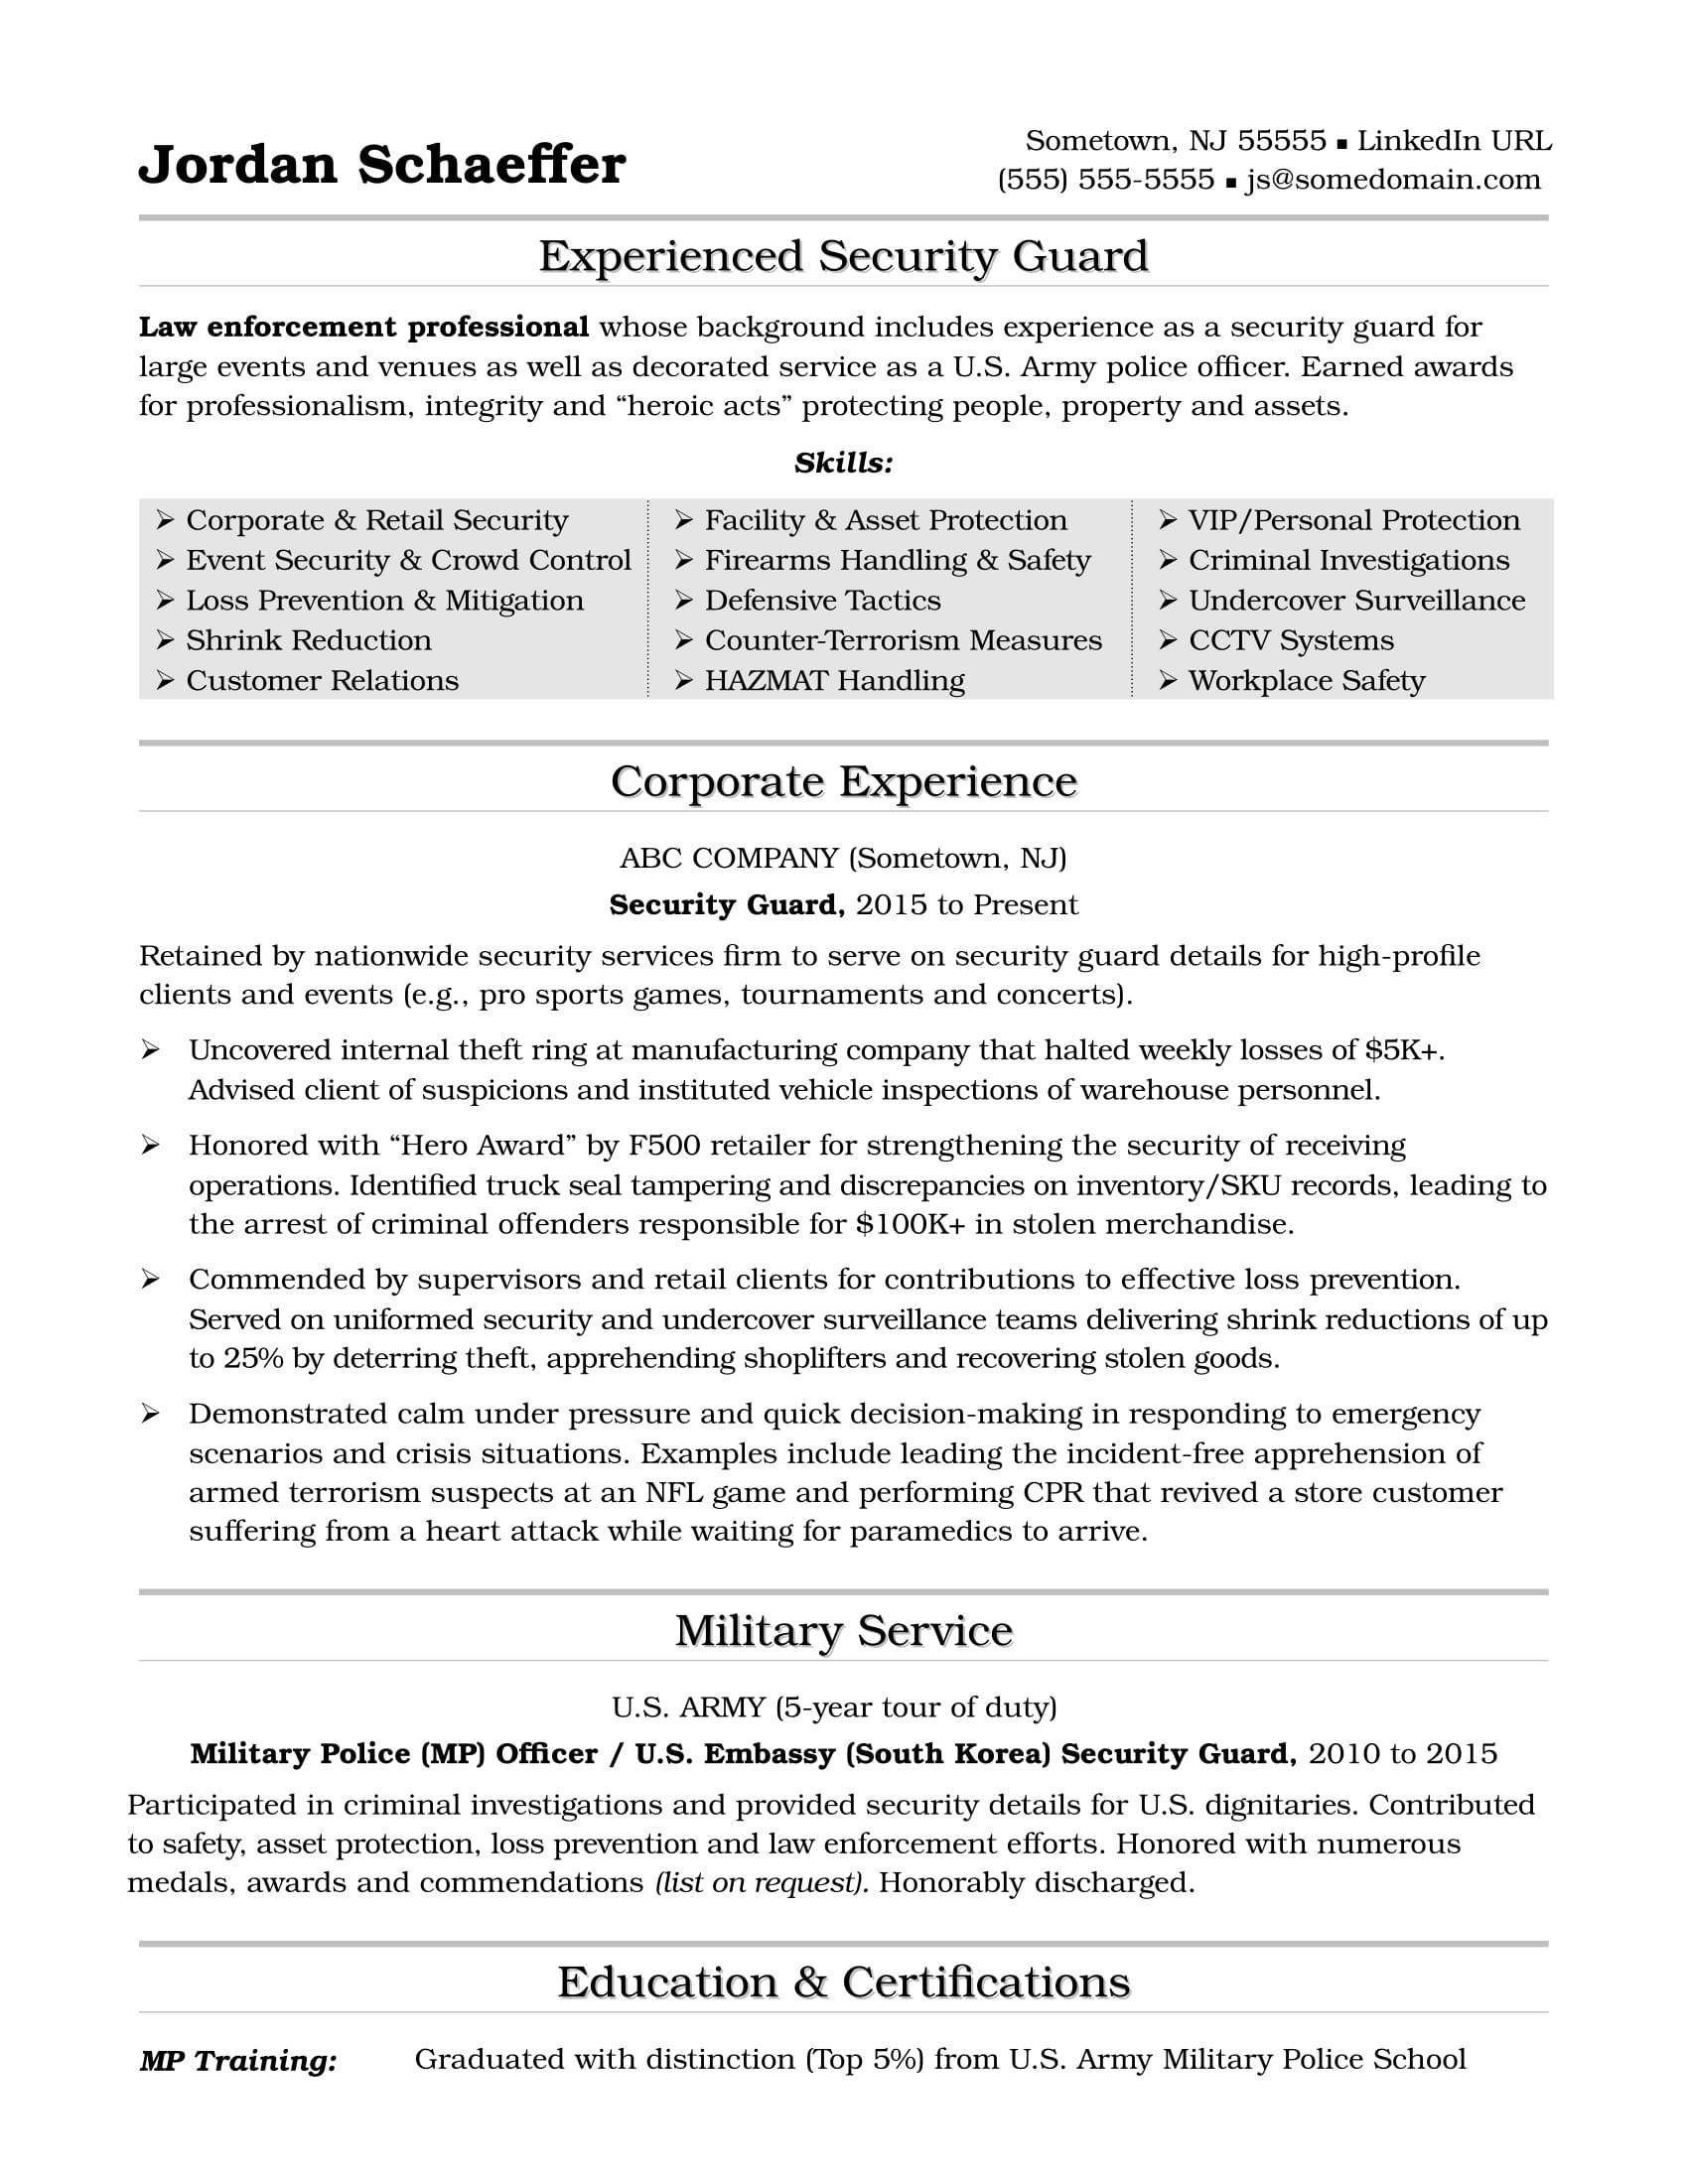 Resume Sample For Experienced Entrancing Security Guard Resume Sample  Sample Resume And Career Advice